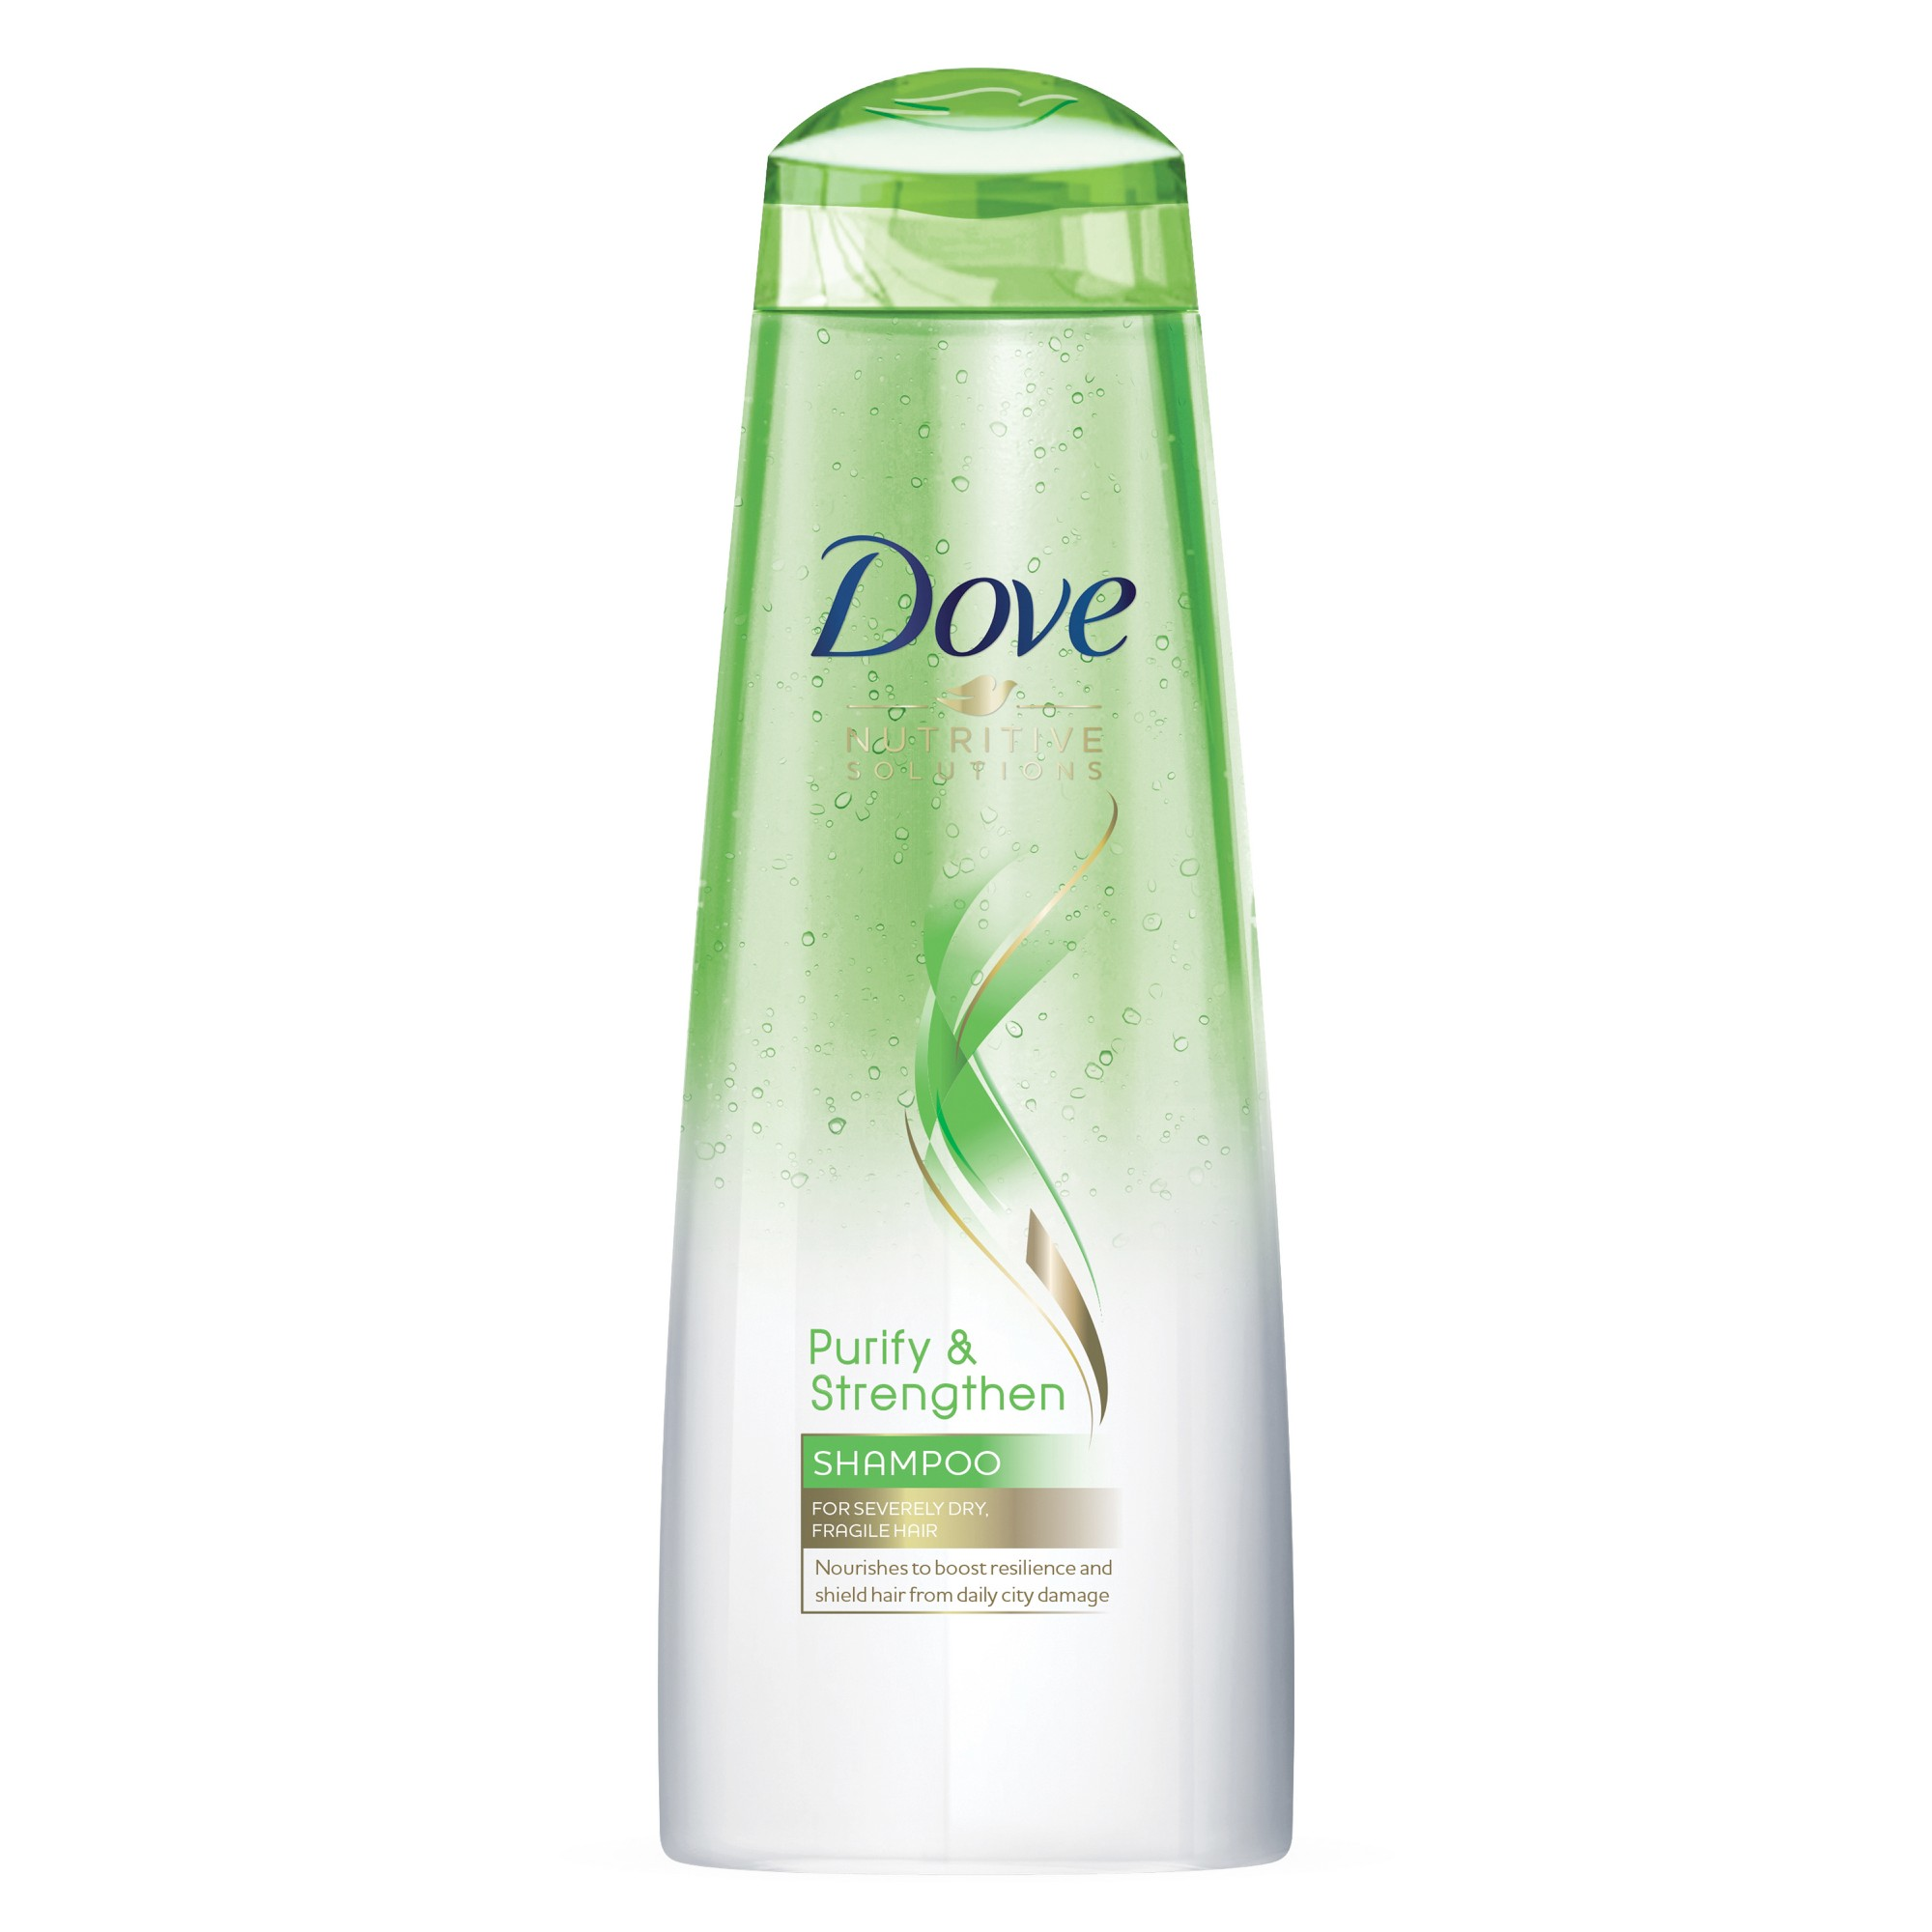 Hair Shampoo And Styling Sets Dove Beauty Thin Hair Help Best Shampoos Hairstyles For Thin Hair